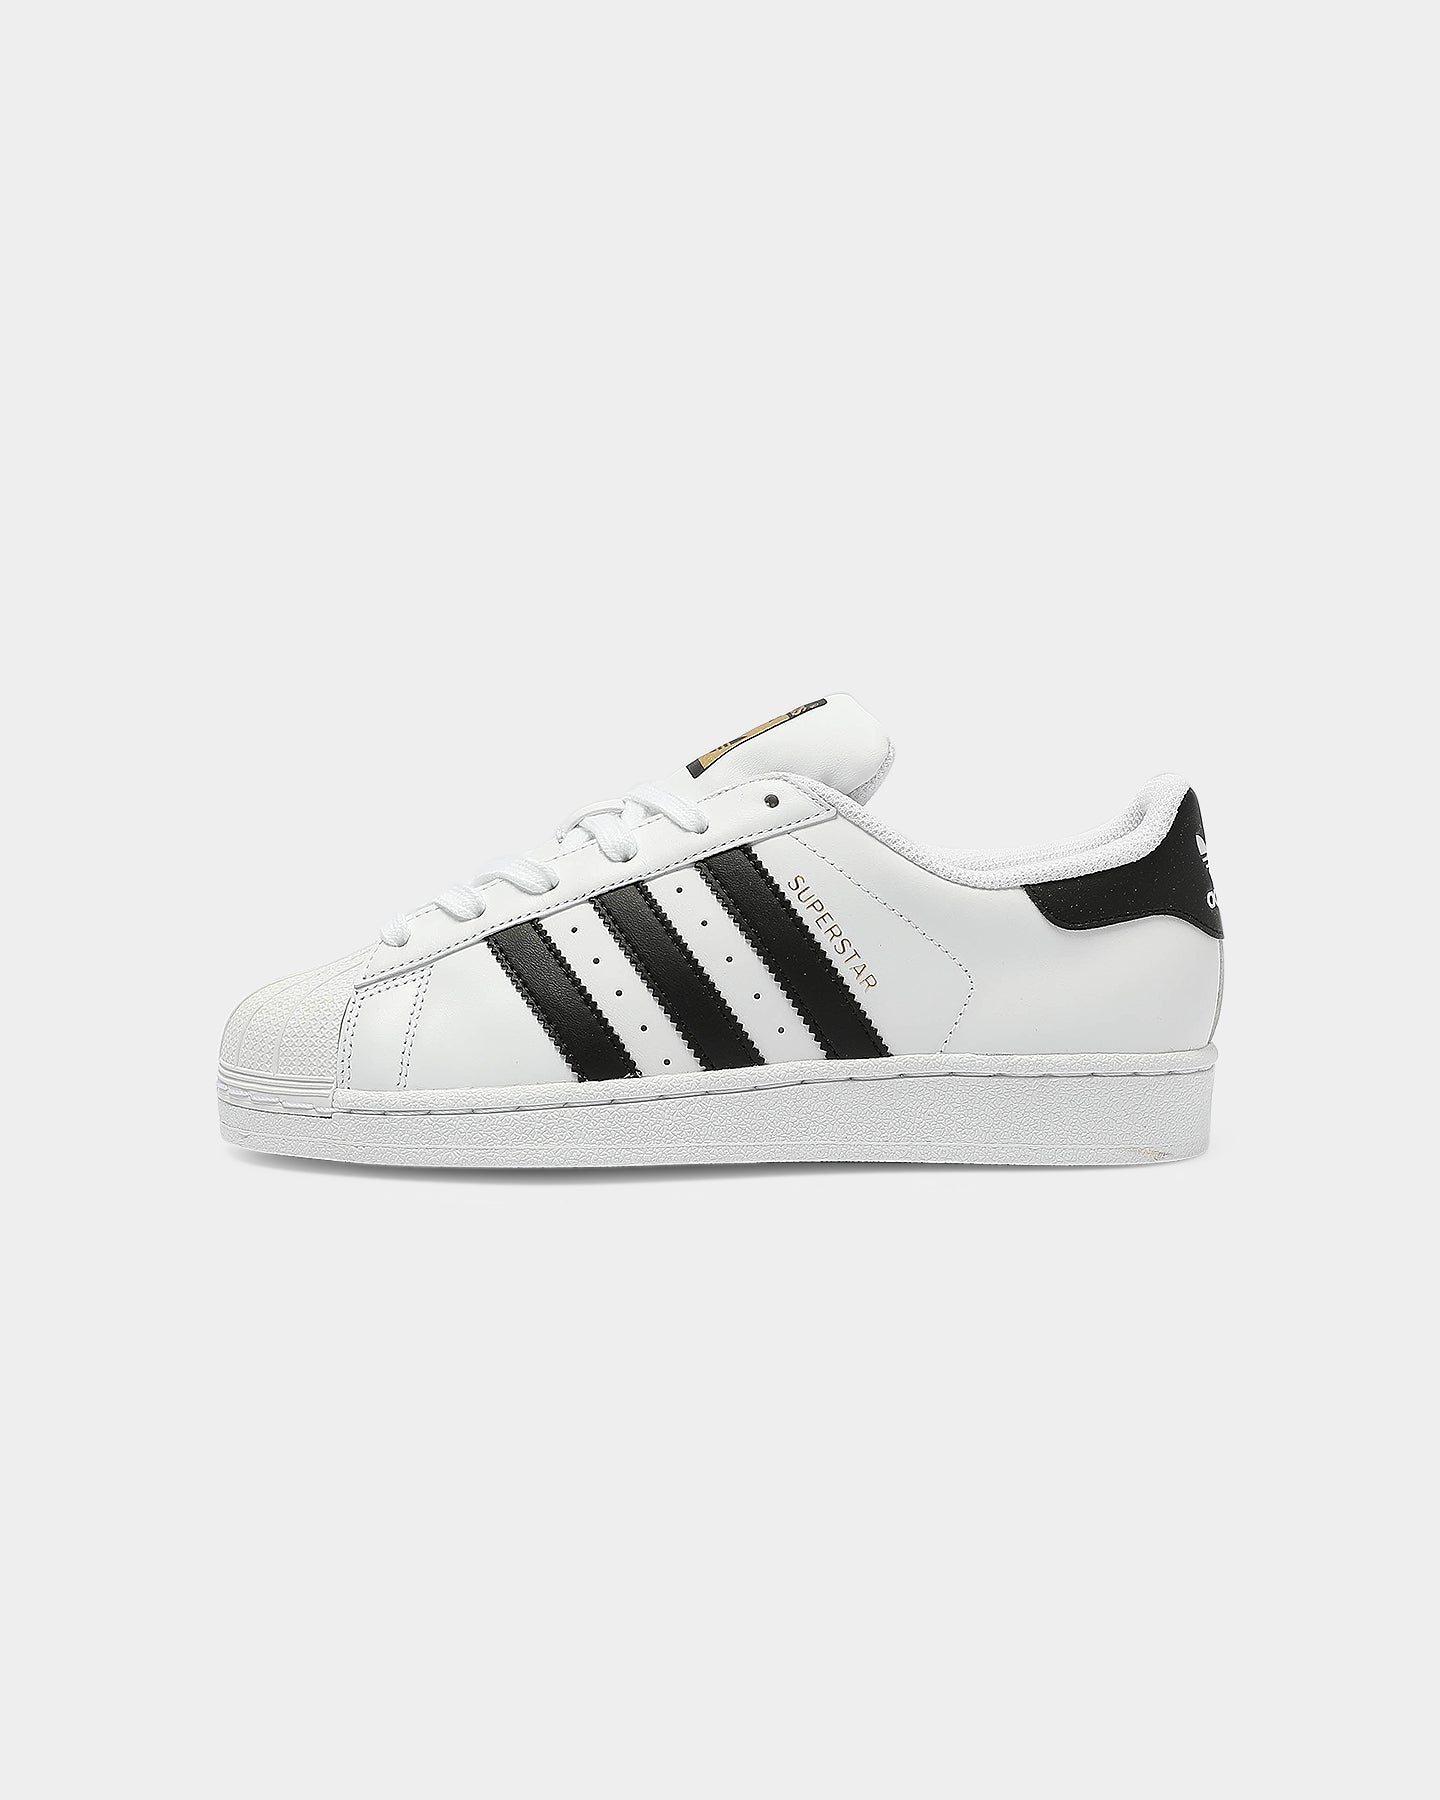 Adidas Originals Superstar Shoe Whiteblack